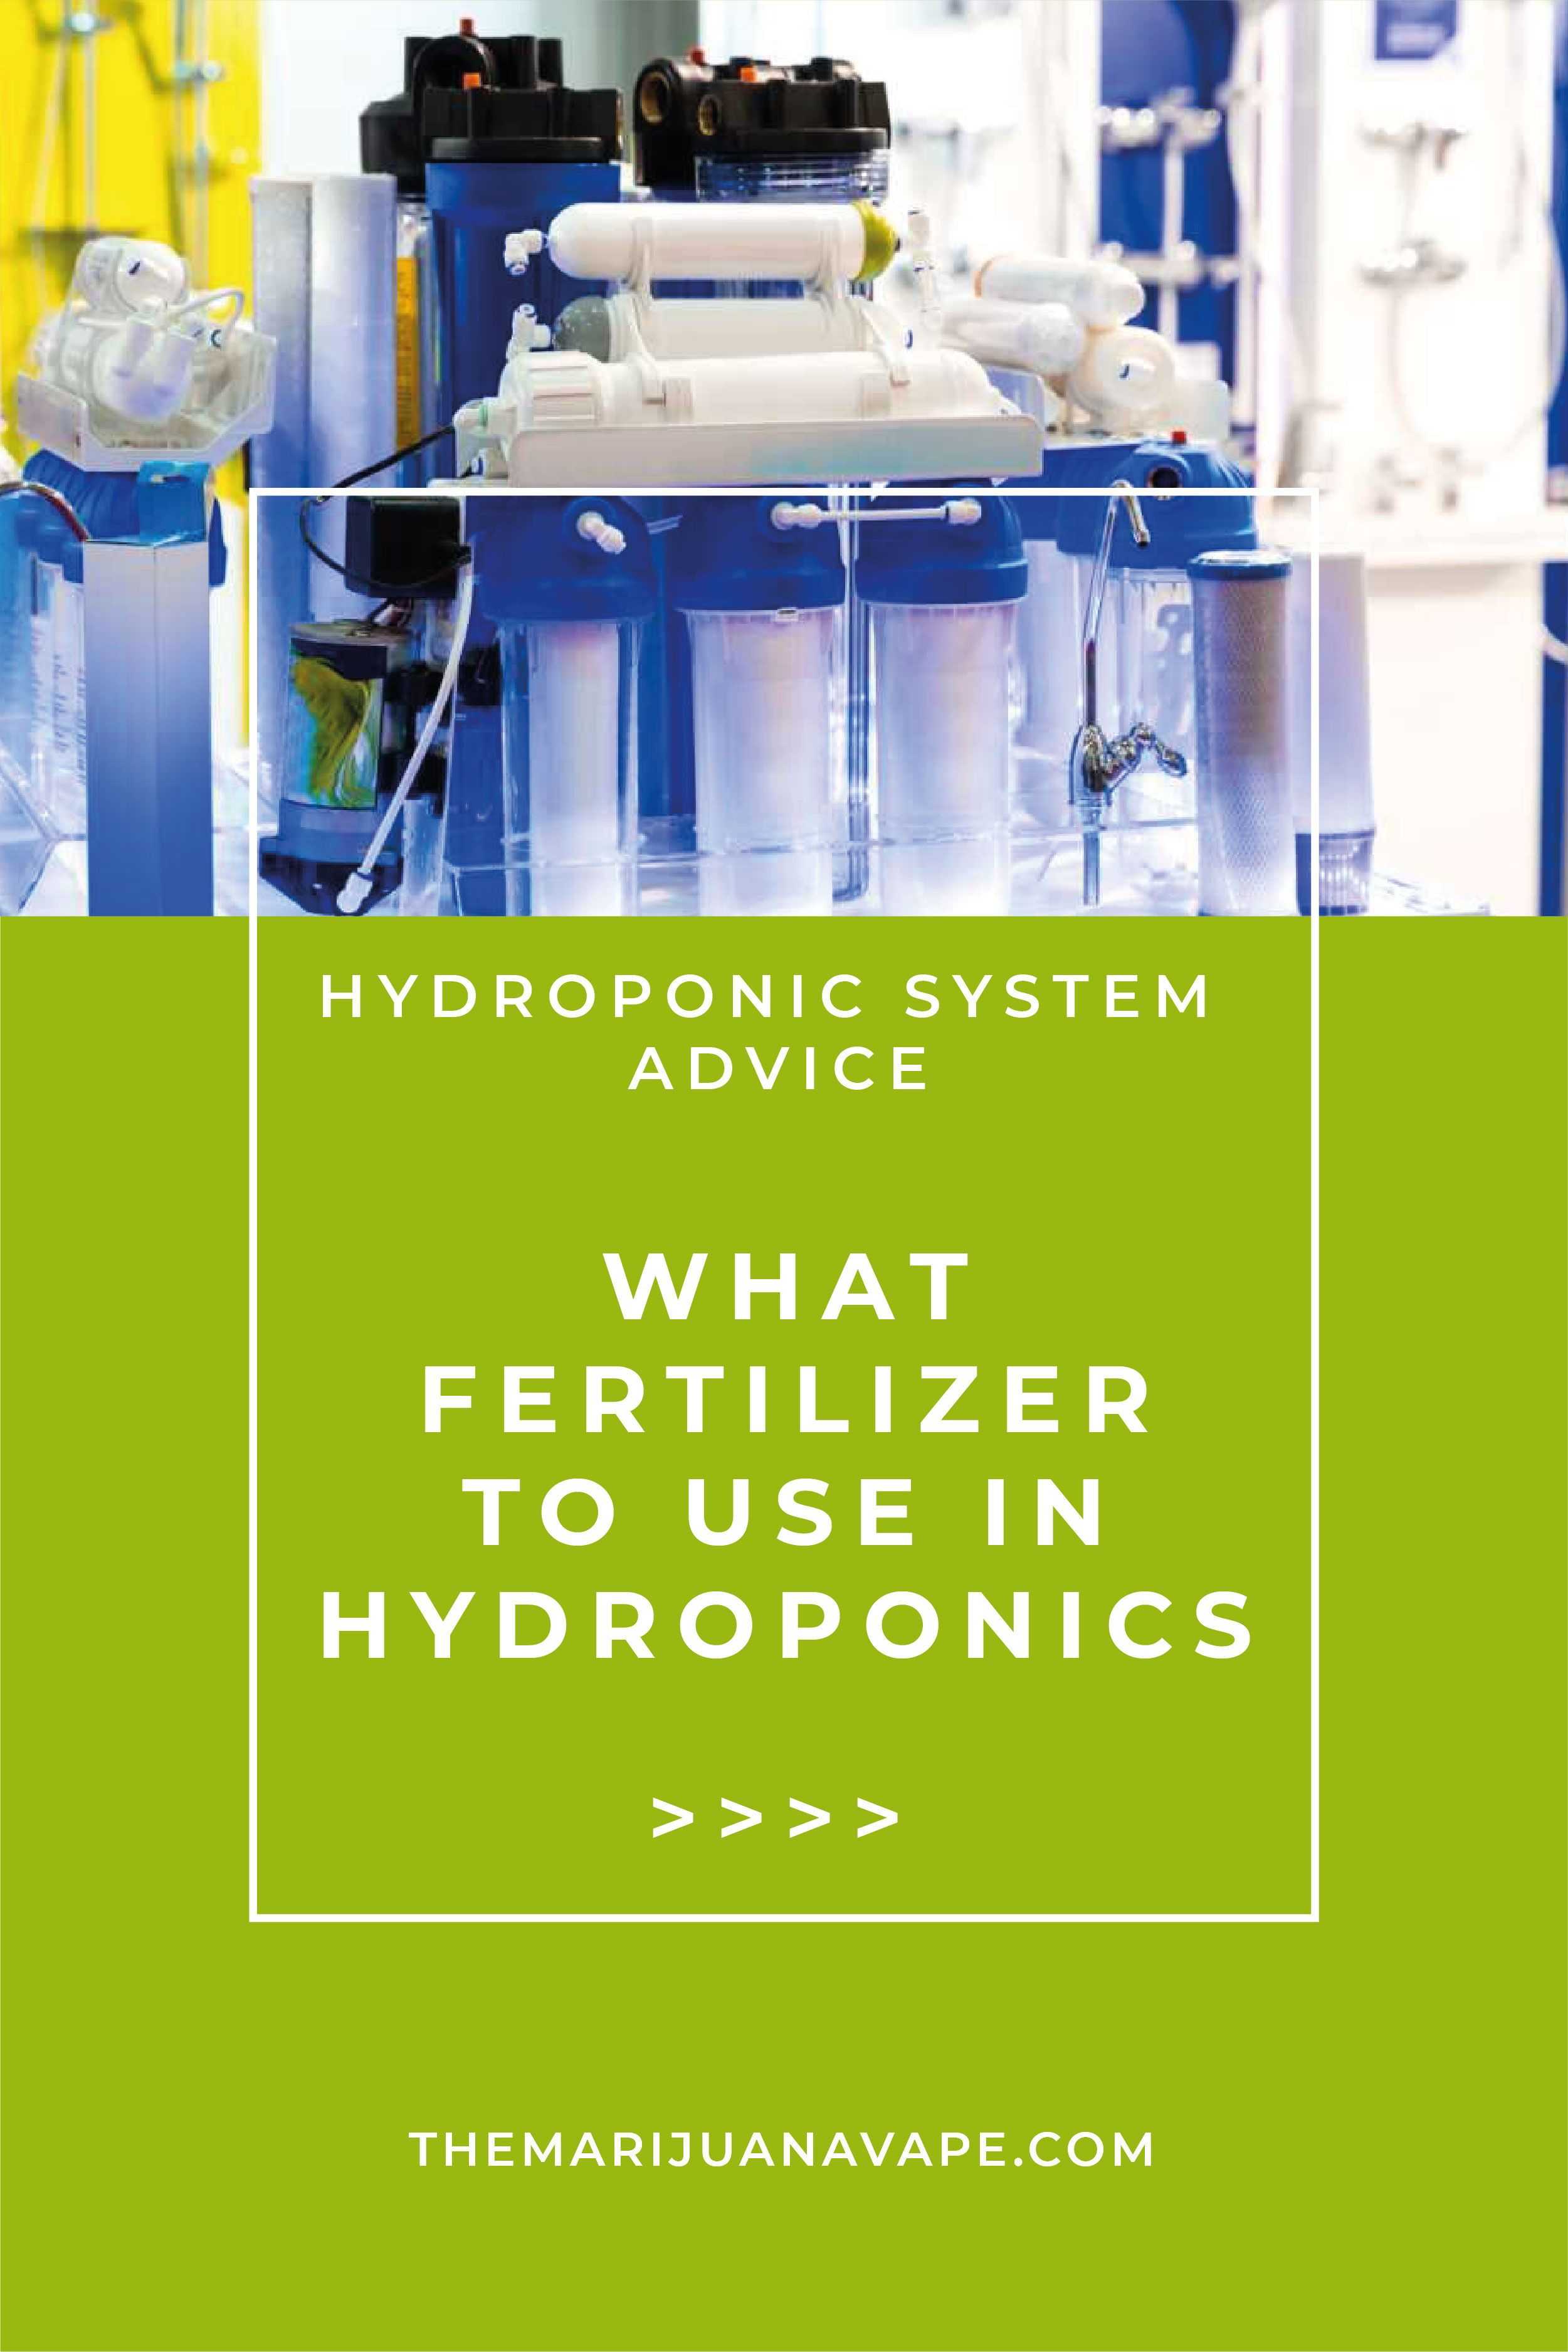 What Fertilizer To Use In Hydroponics Your Fertilizers Are Perhaps